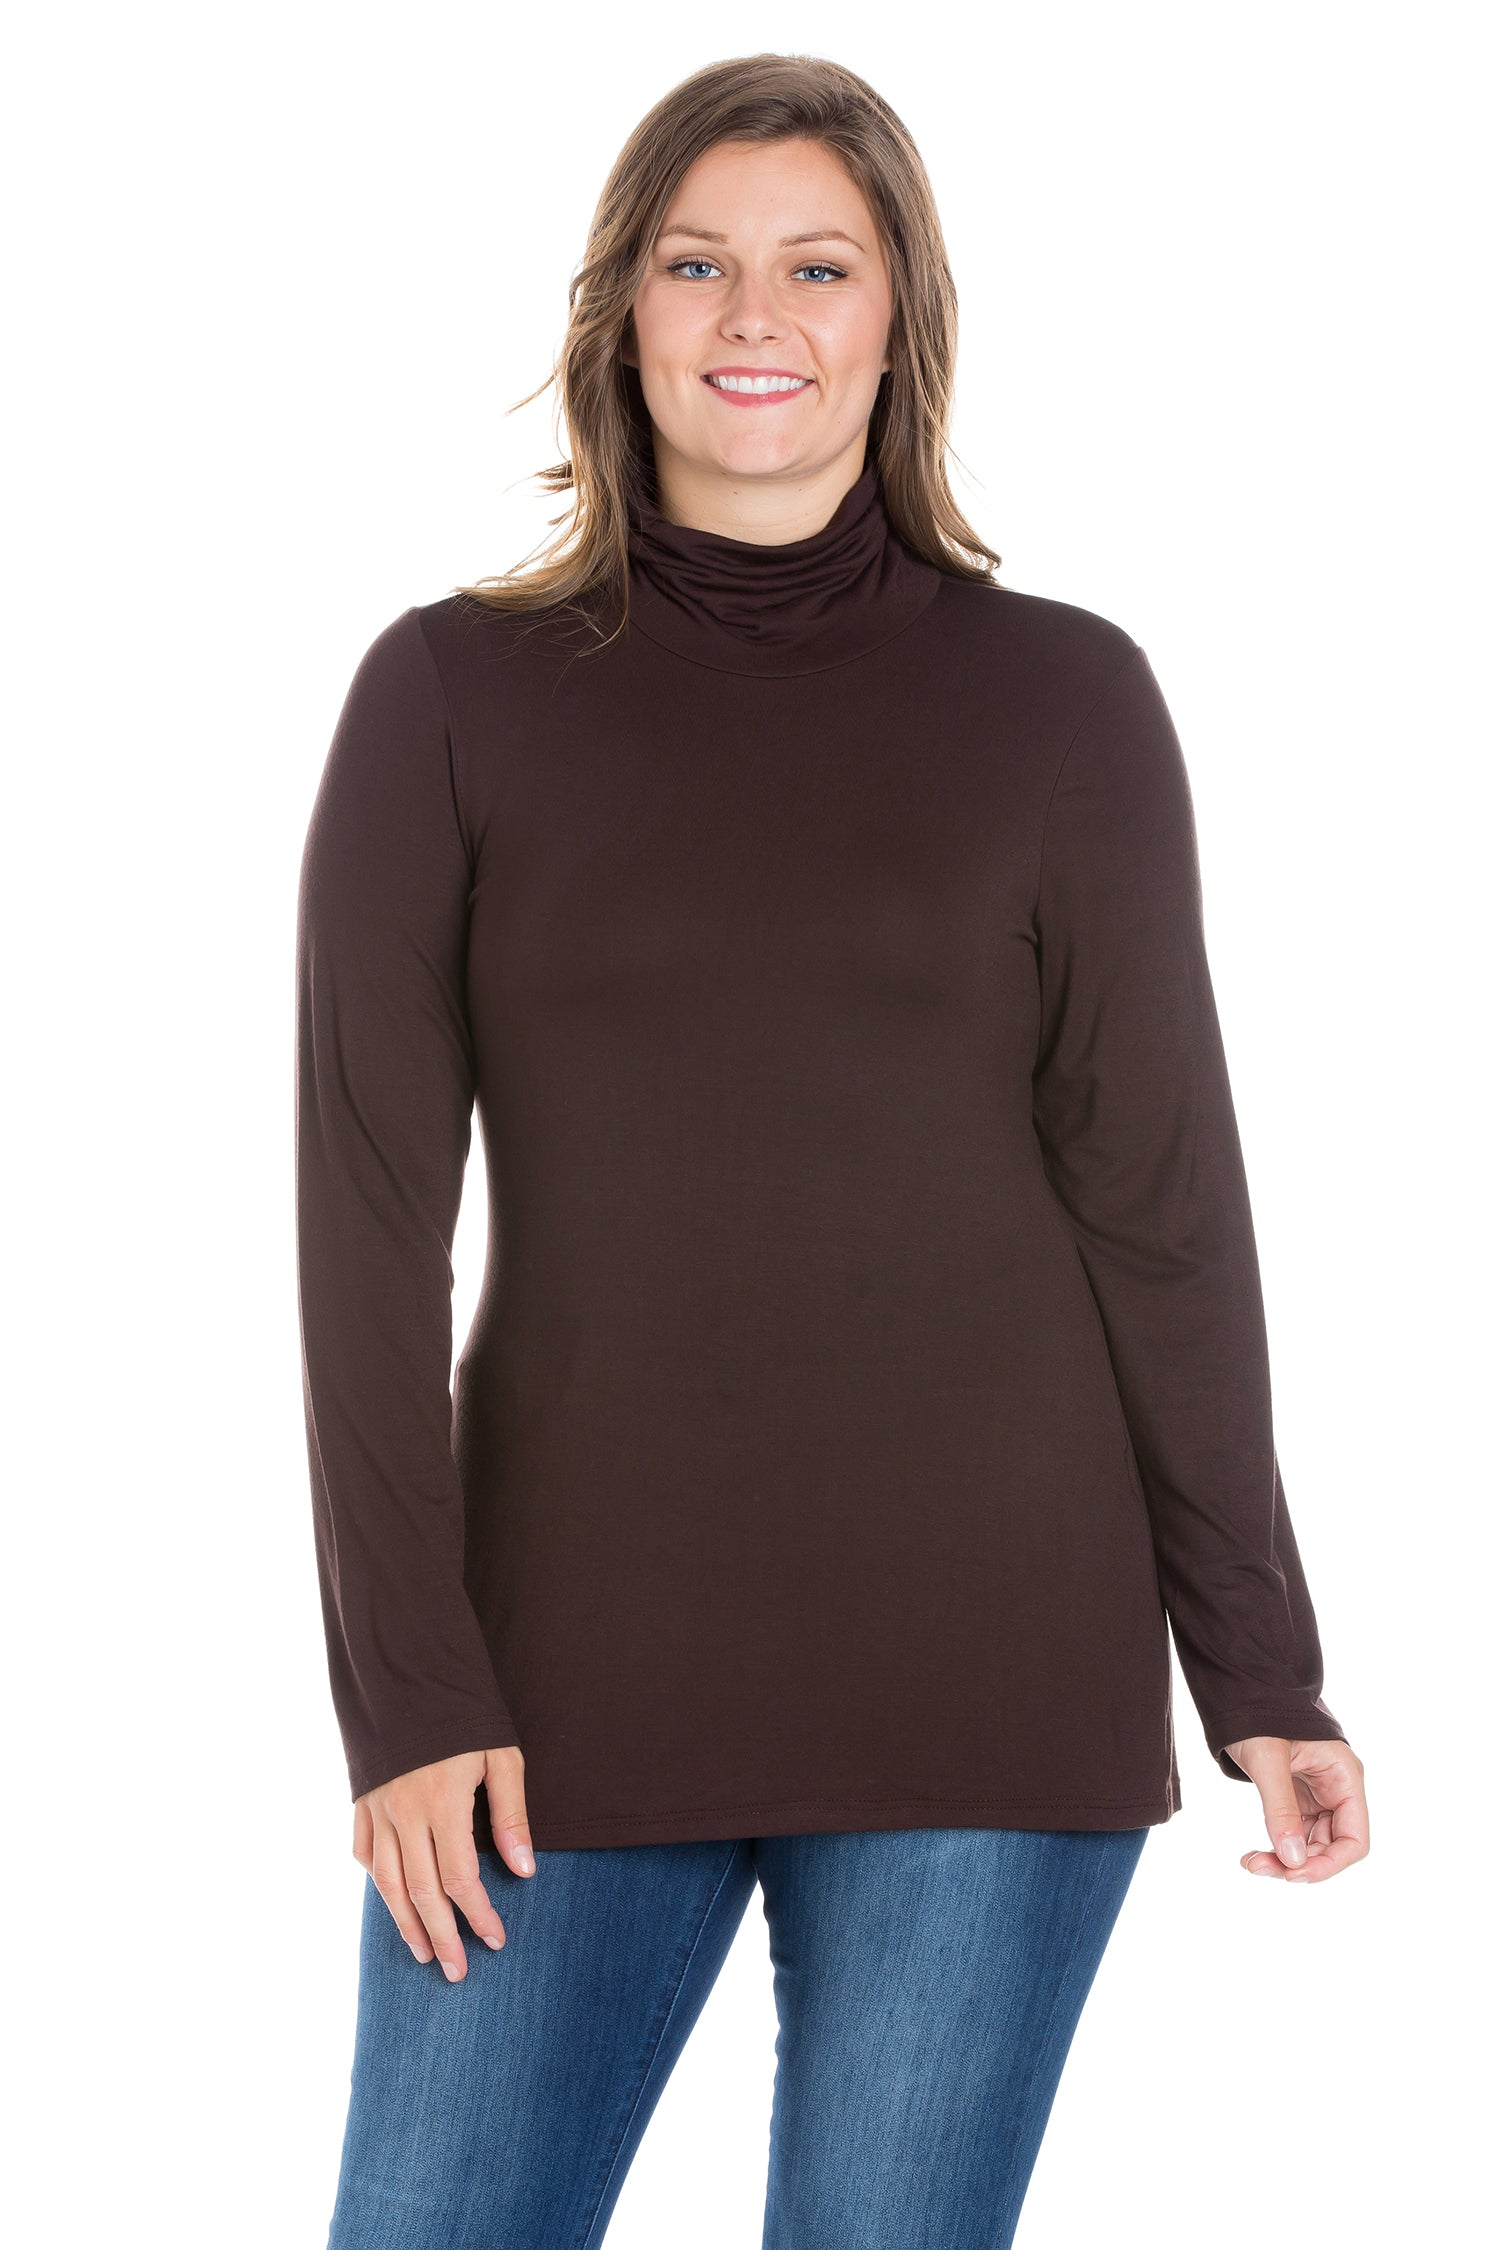 24seven Comfort Apparel Classic Womens Plus Size Long Sleeve Turtleneck-TOPS-24Seven Comfort Apparel-BROWN-1X-24/7 Comfort Apparel